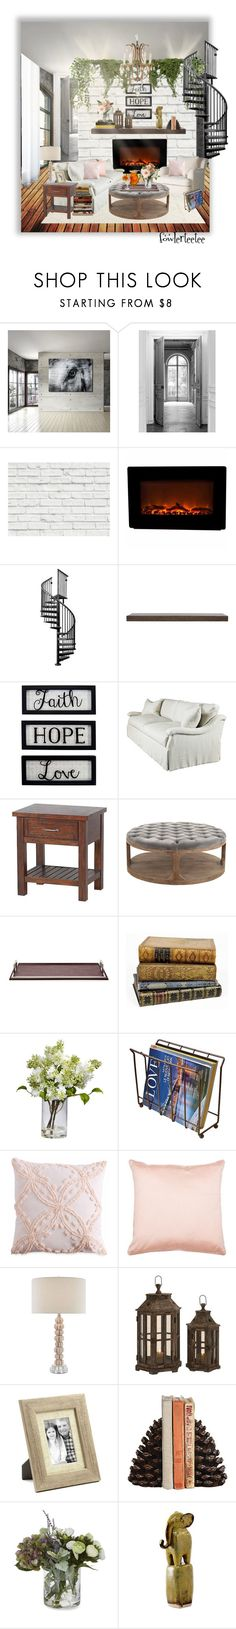 """Hopeless Romantic"" by fowlerteetee ❤ liked on Polyvore featuring interior, interiors, interior design, home, home decor, interior decorating, Ready2hangart, Maison Margiela, Brewster Home Fashions and Eureka"